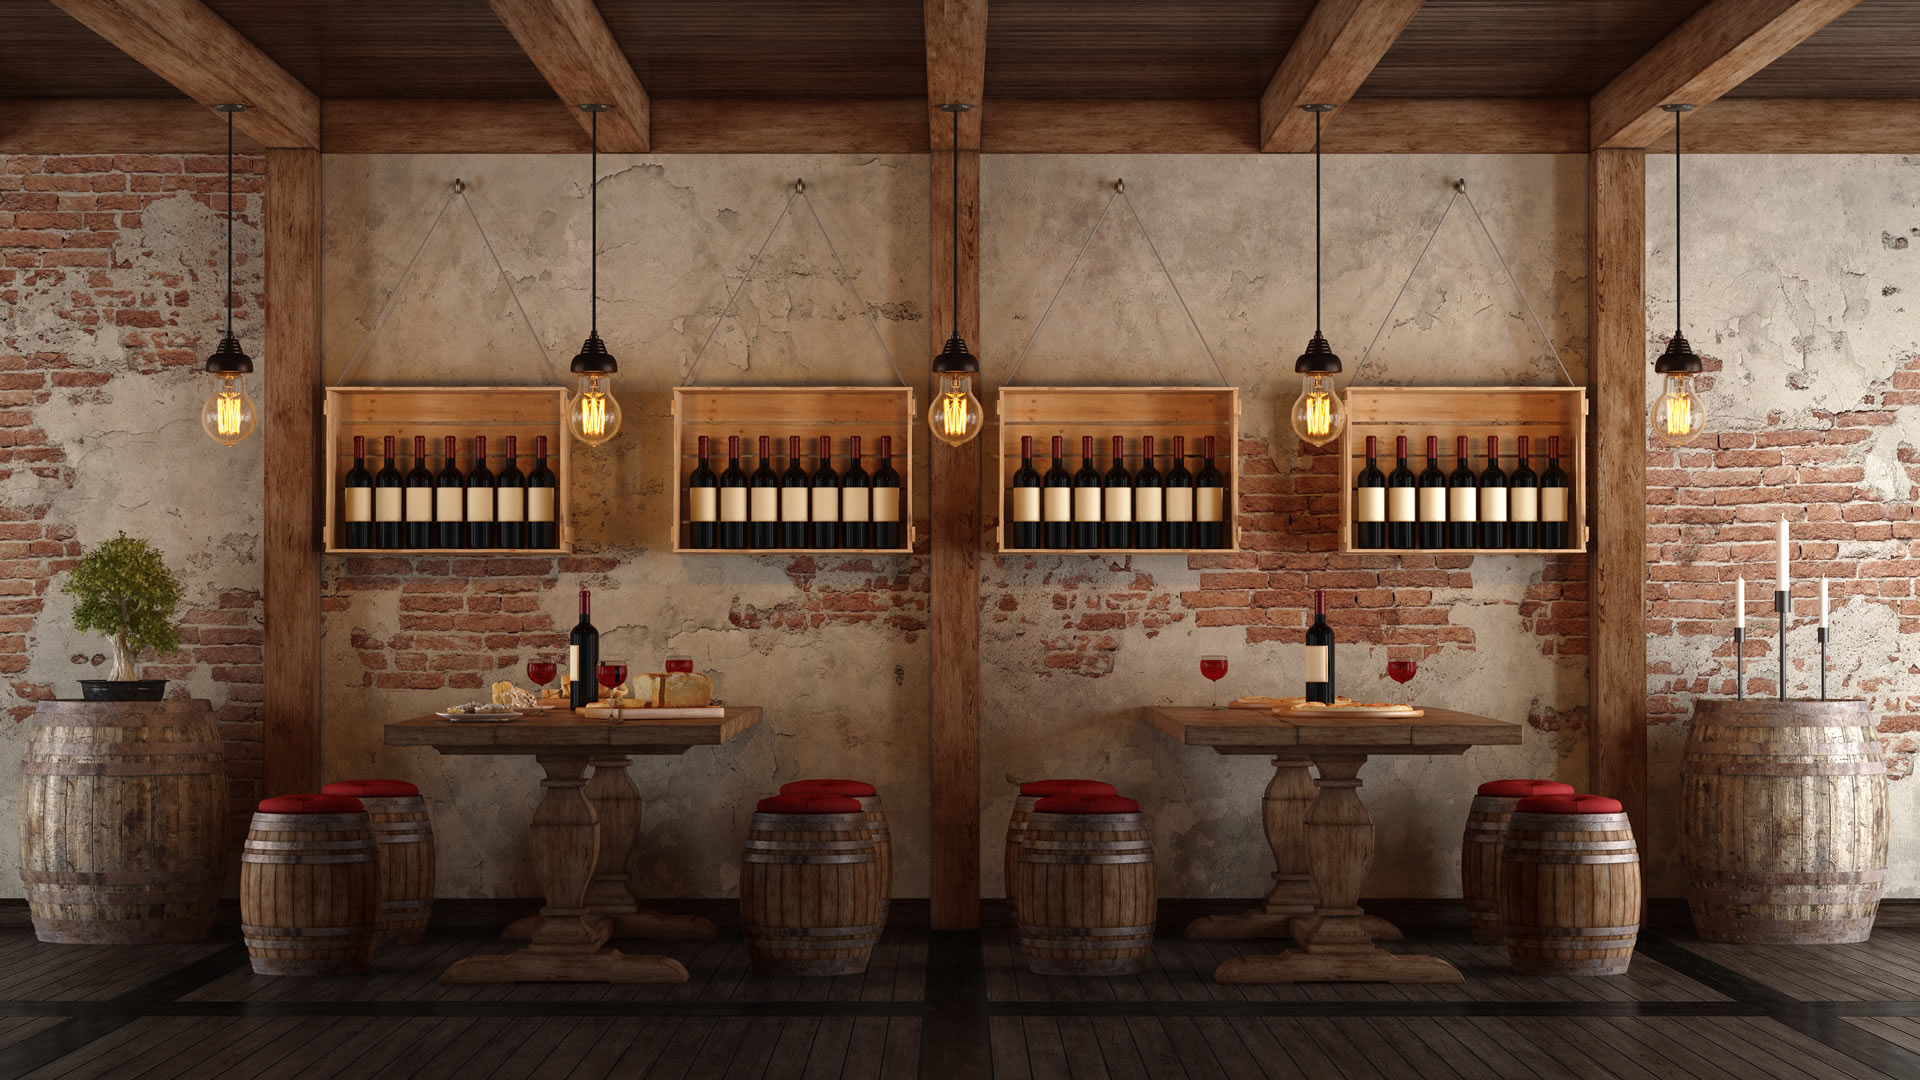 From small, artisanal and rustic wineries in Grapevine and McKinney to expansive and freshly minted tasting rooms in Dallas discover the best wine trails.